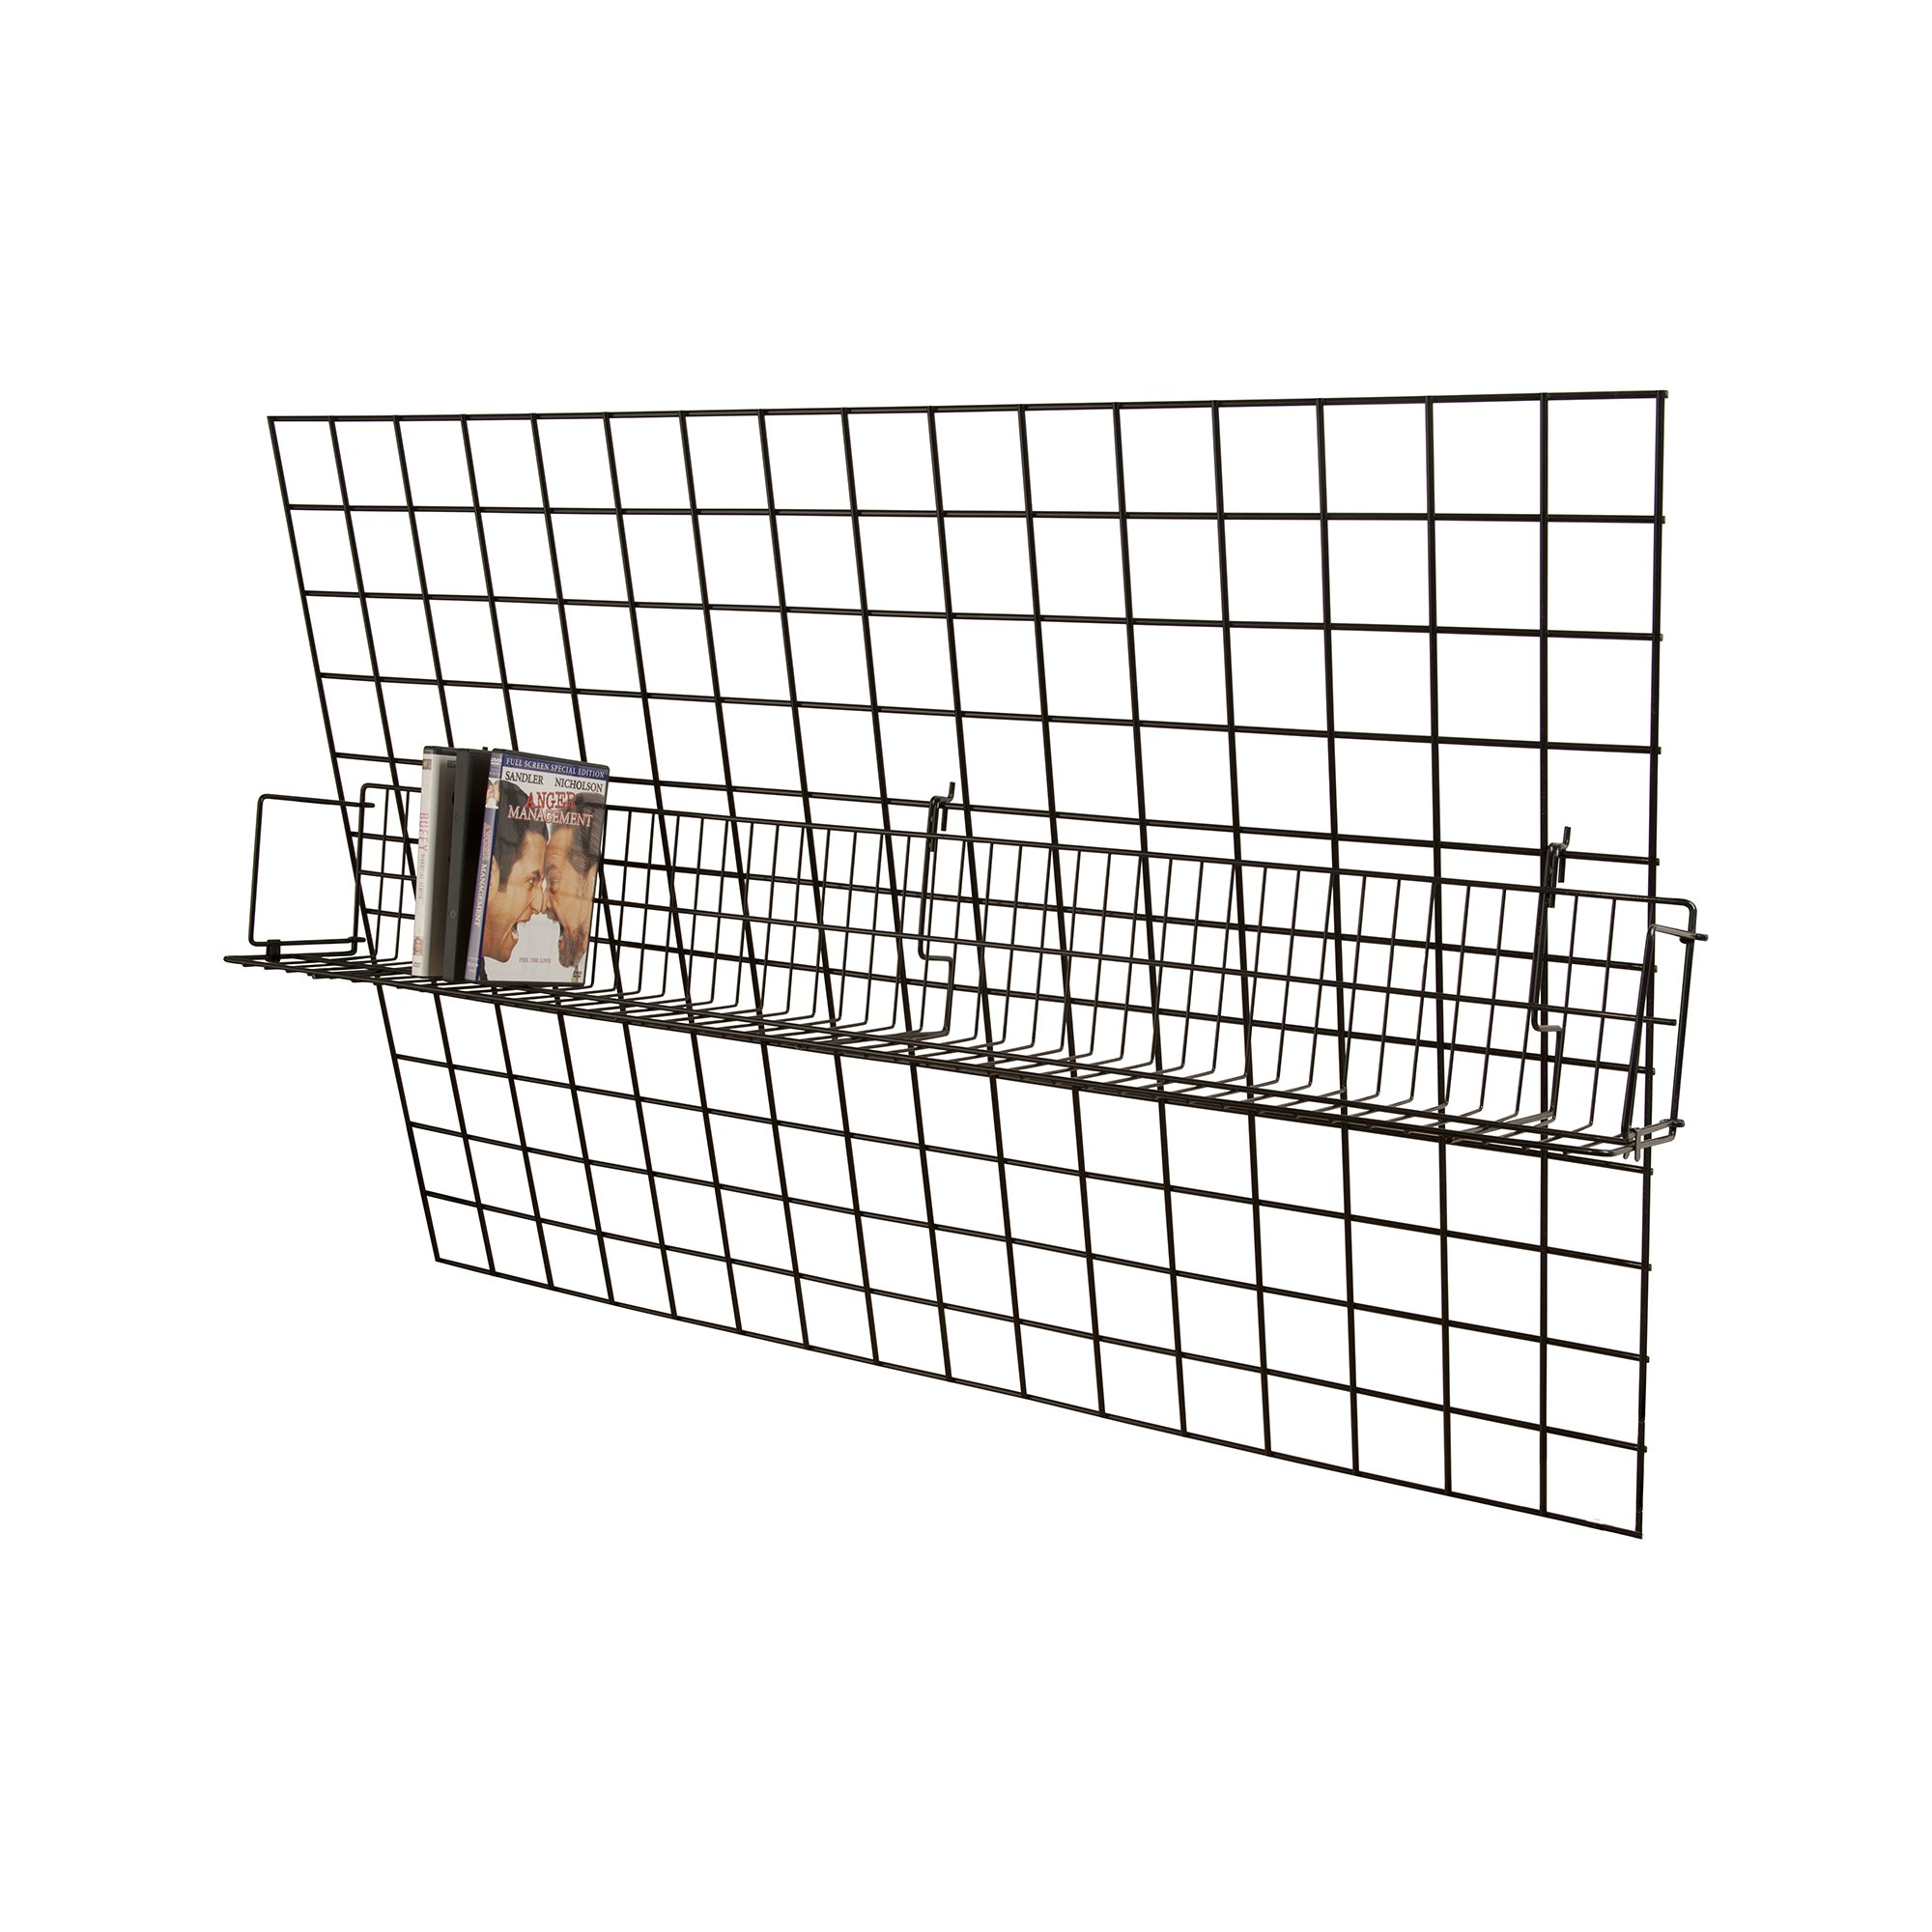 ExecuSystems 48'' Wide Video Shelf for Slatwall, Gridwall or Pegboard - Box of 6 by Unknown (Image #3)